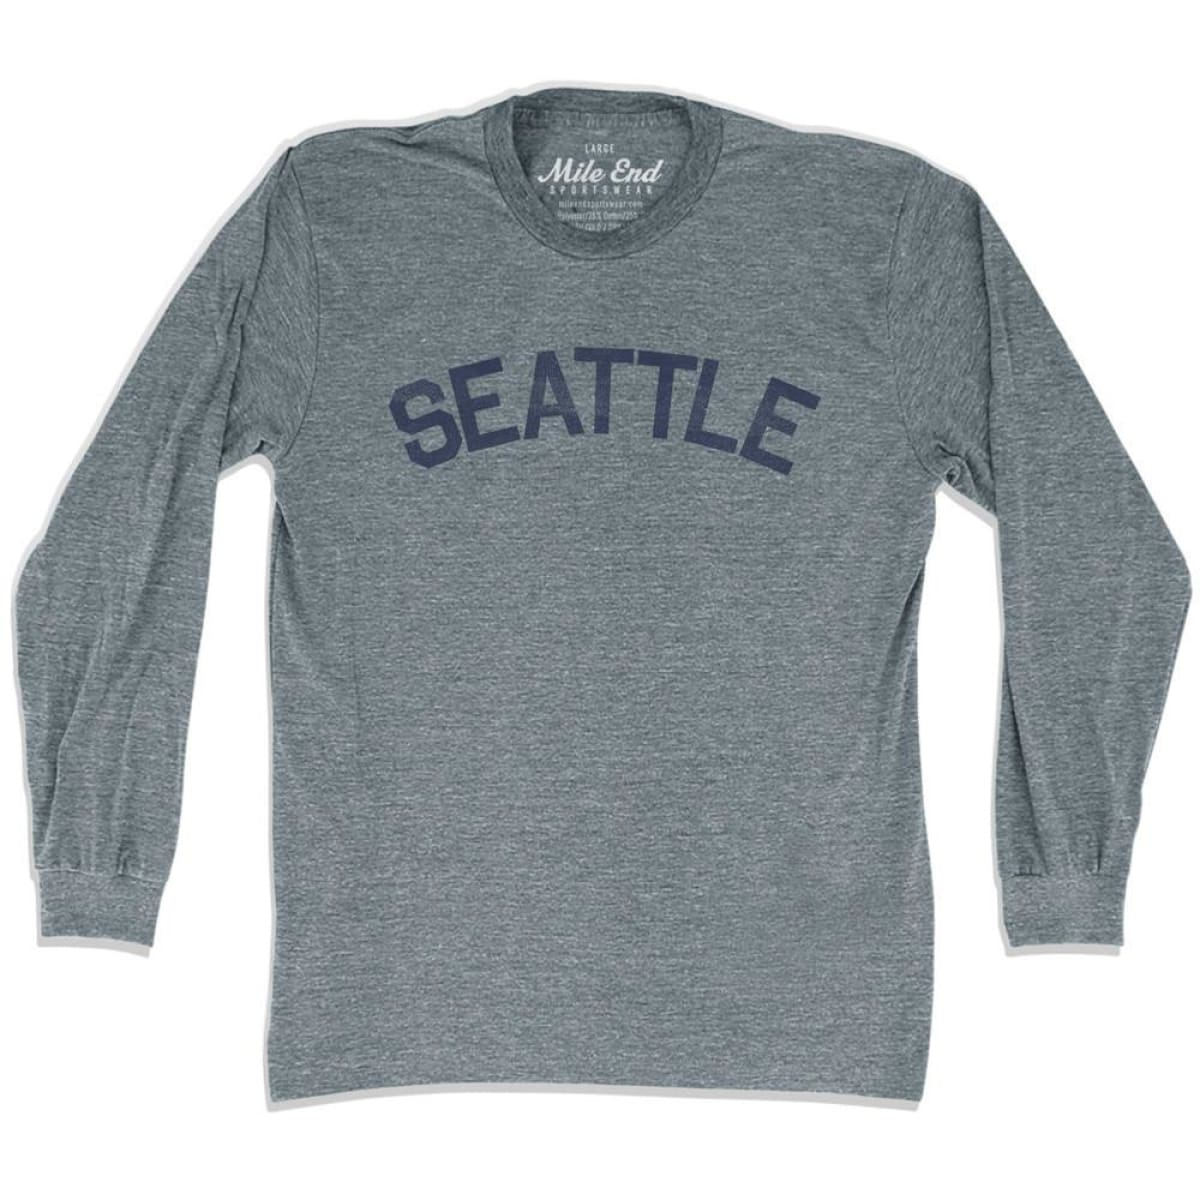 Seattle City Vintage Long Sleeve T-Shirt - Athletic Grey / Adult X-Small - Mile End City